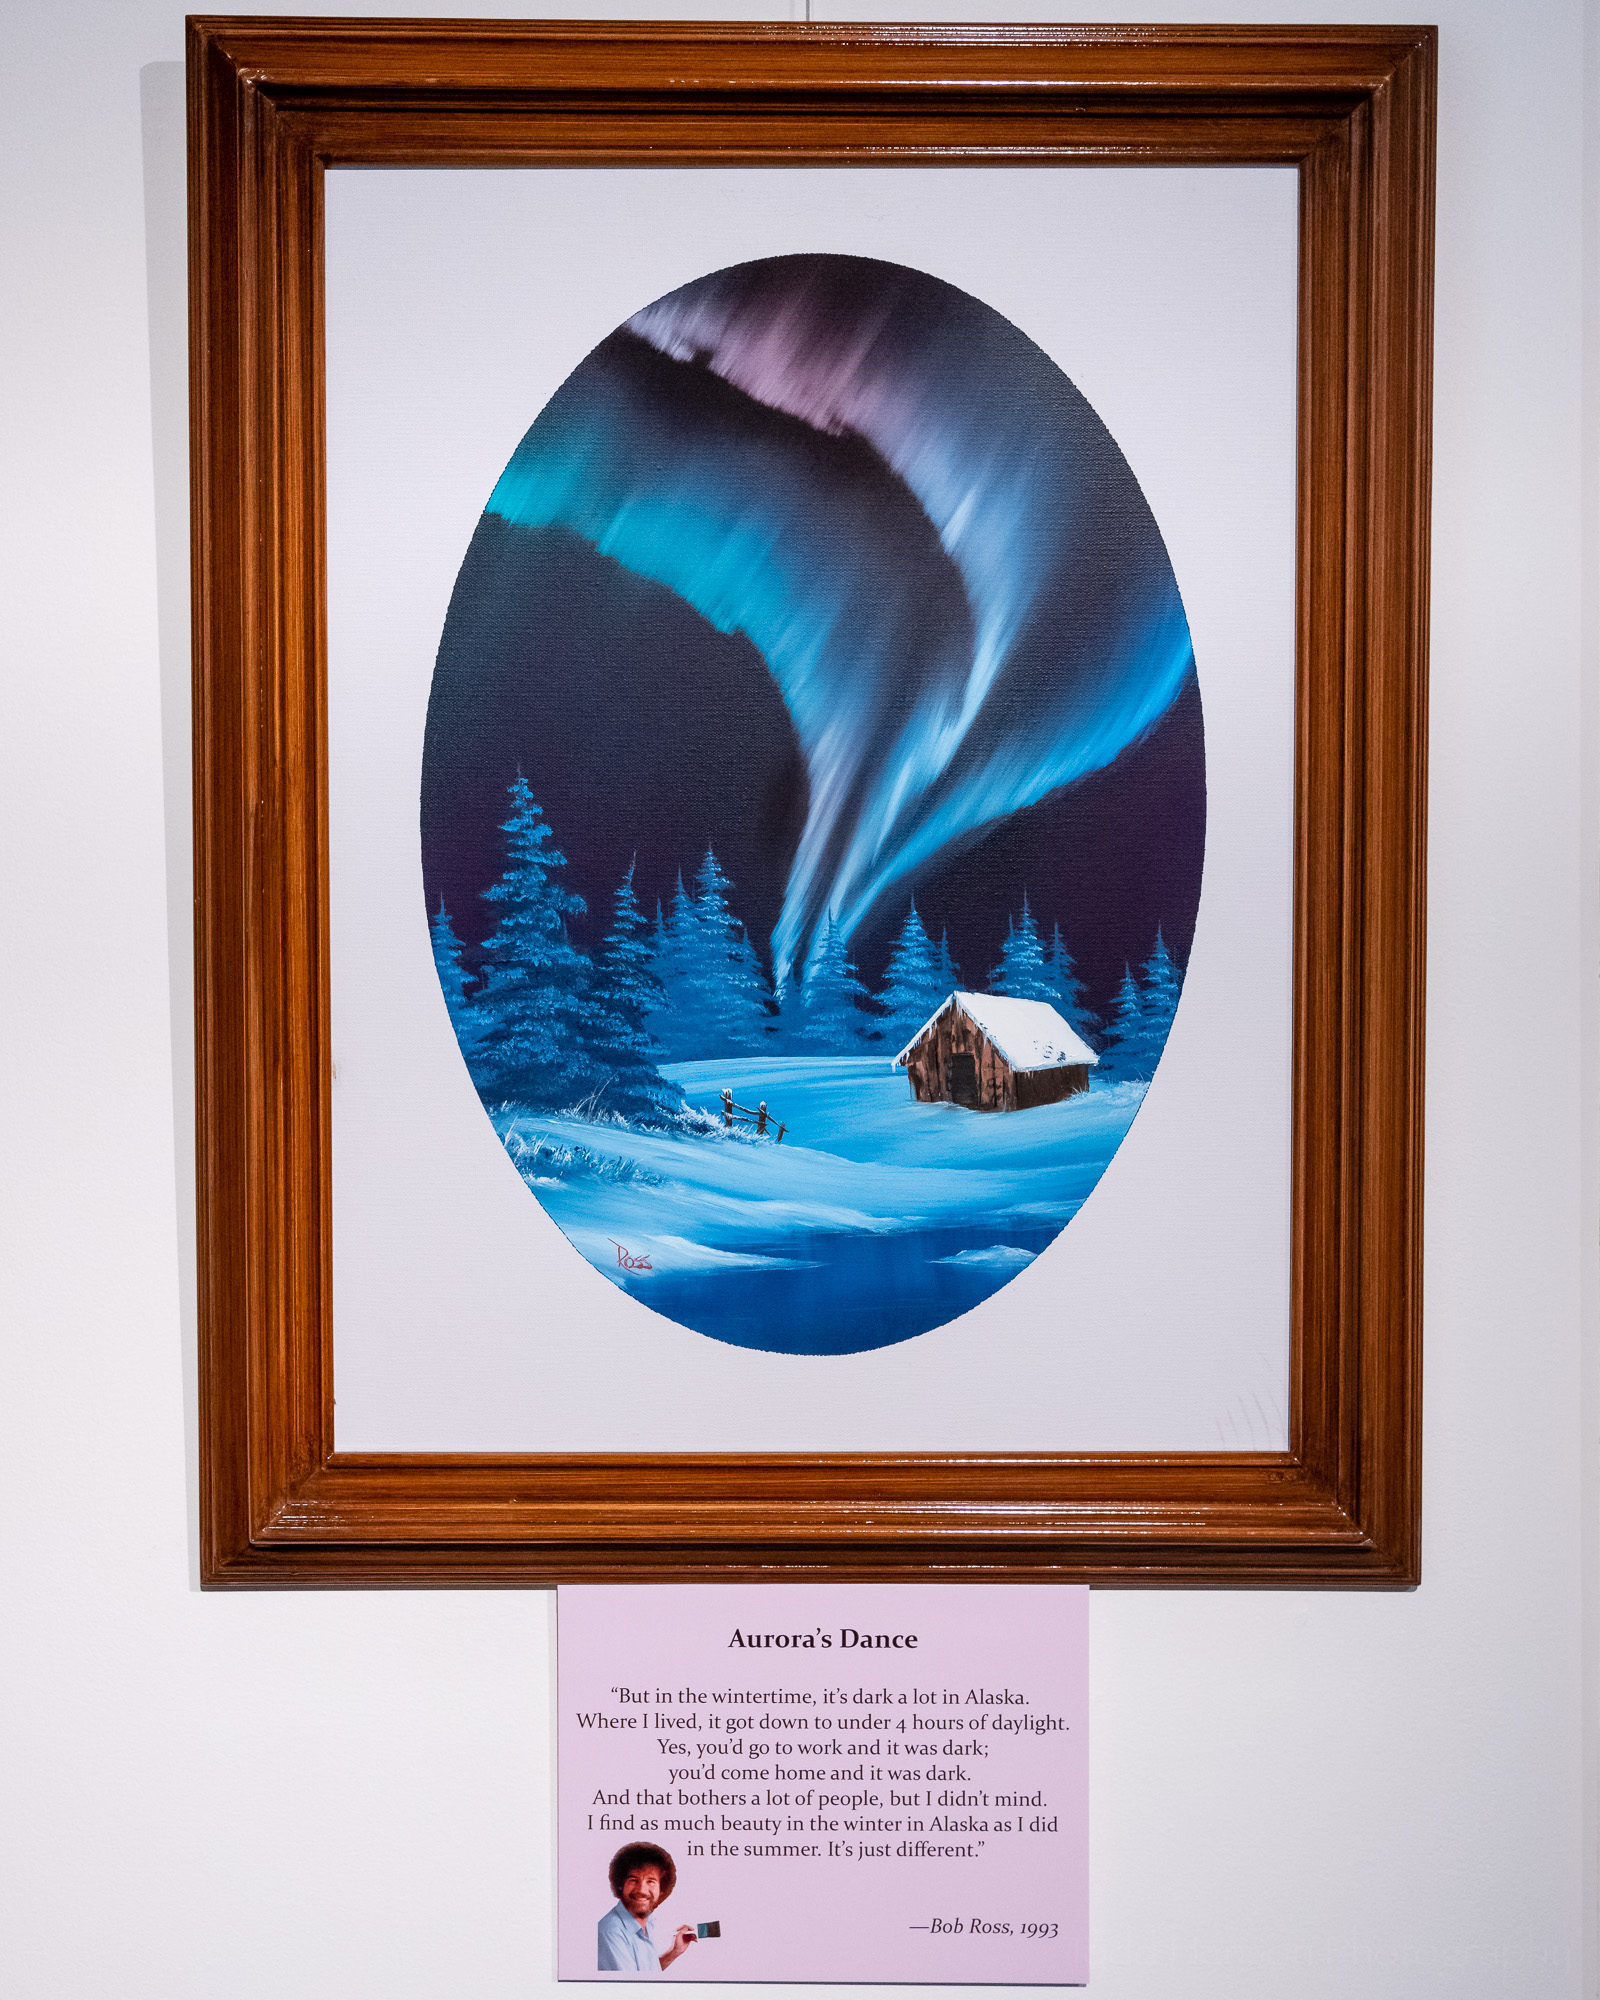 Aurora's Dance , an original oil painting by Bob Ross, exhibited at Franklin Park Arts Center